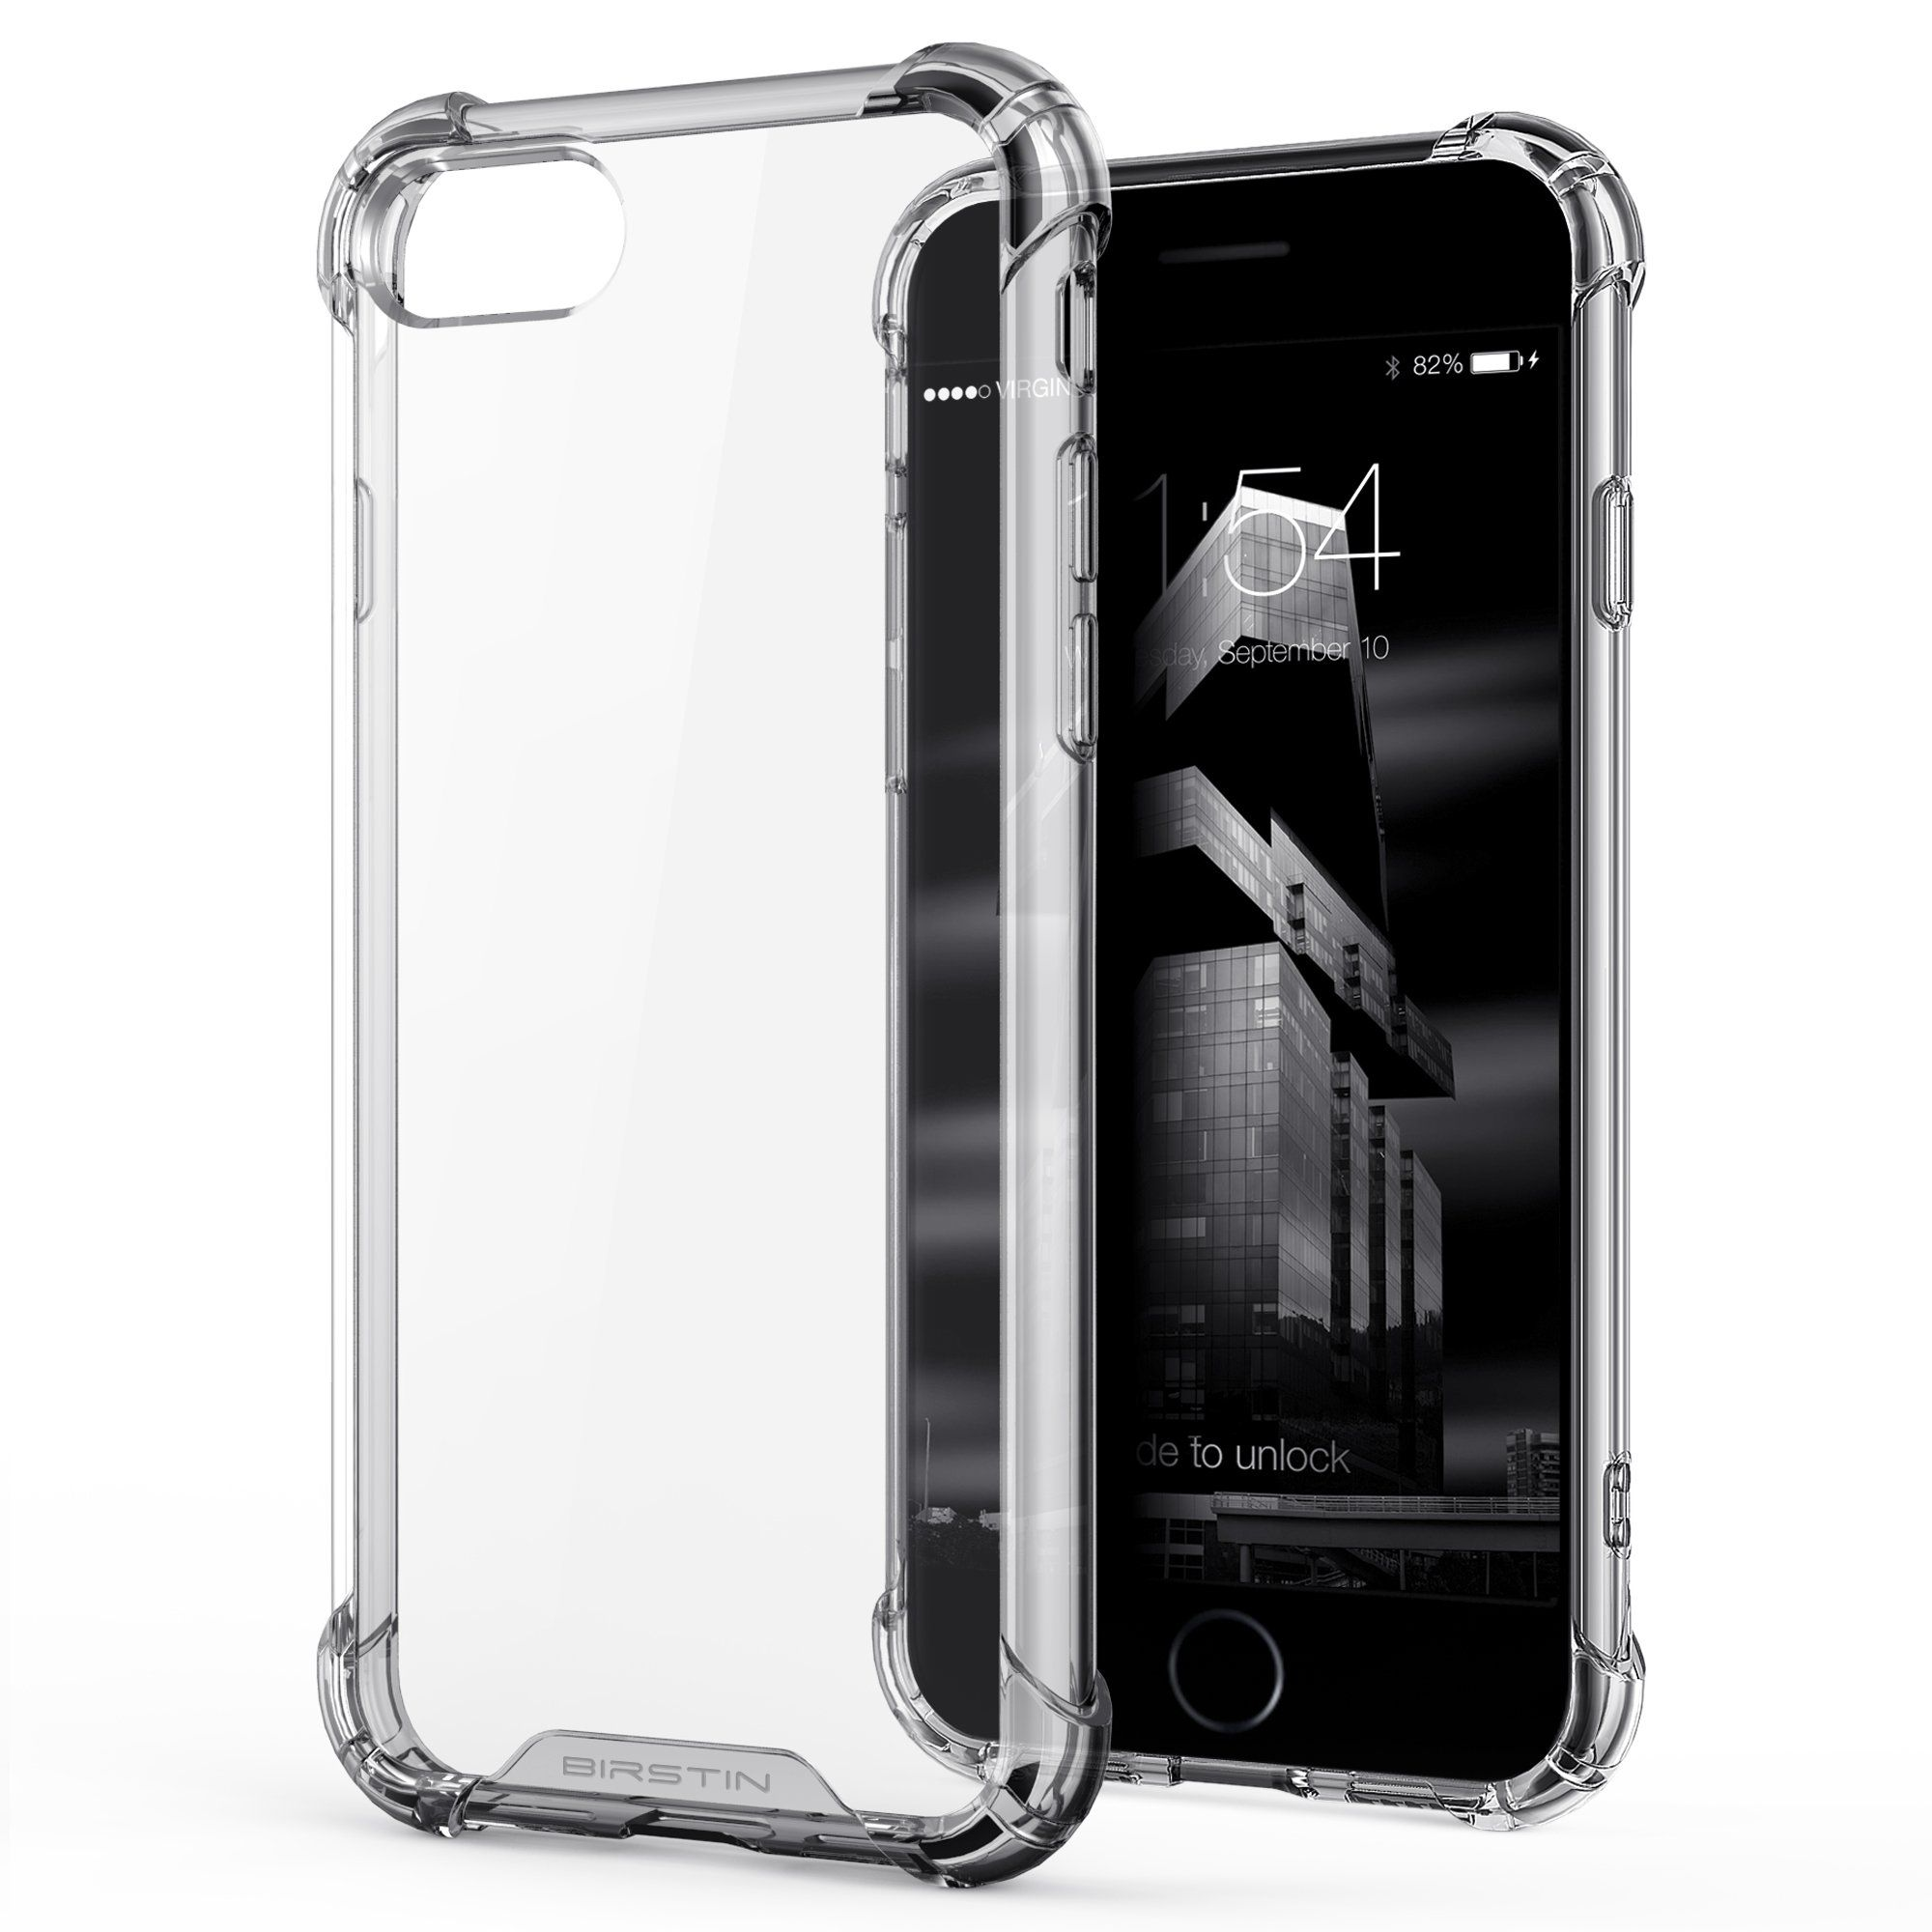 Iphone 7 Case Birstin Clear Case For Iphone 7 With Transparent Hard Plastic Back Plate And Soft Tpu Gel Bumper Clear Specia Clear Cases Iphone Iphone Cases